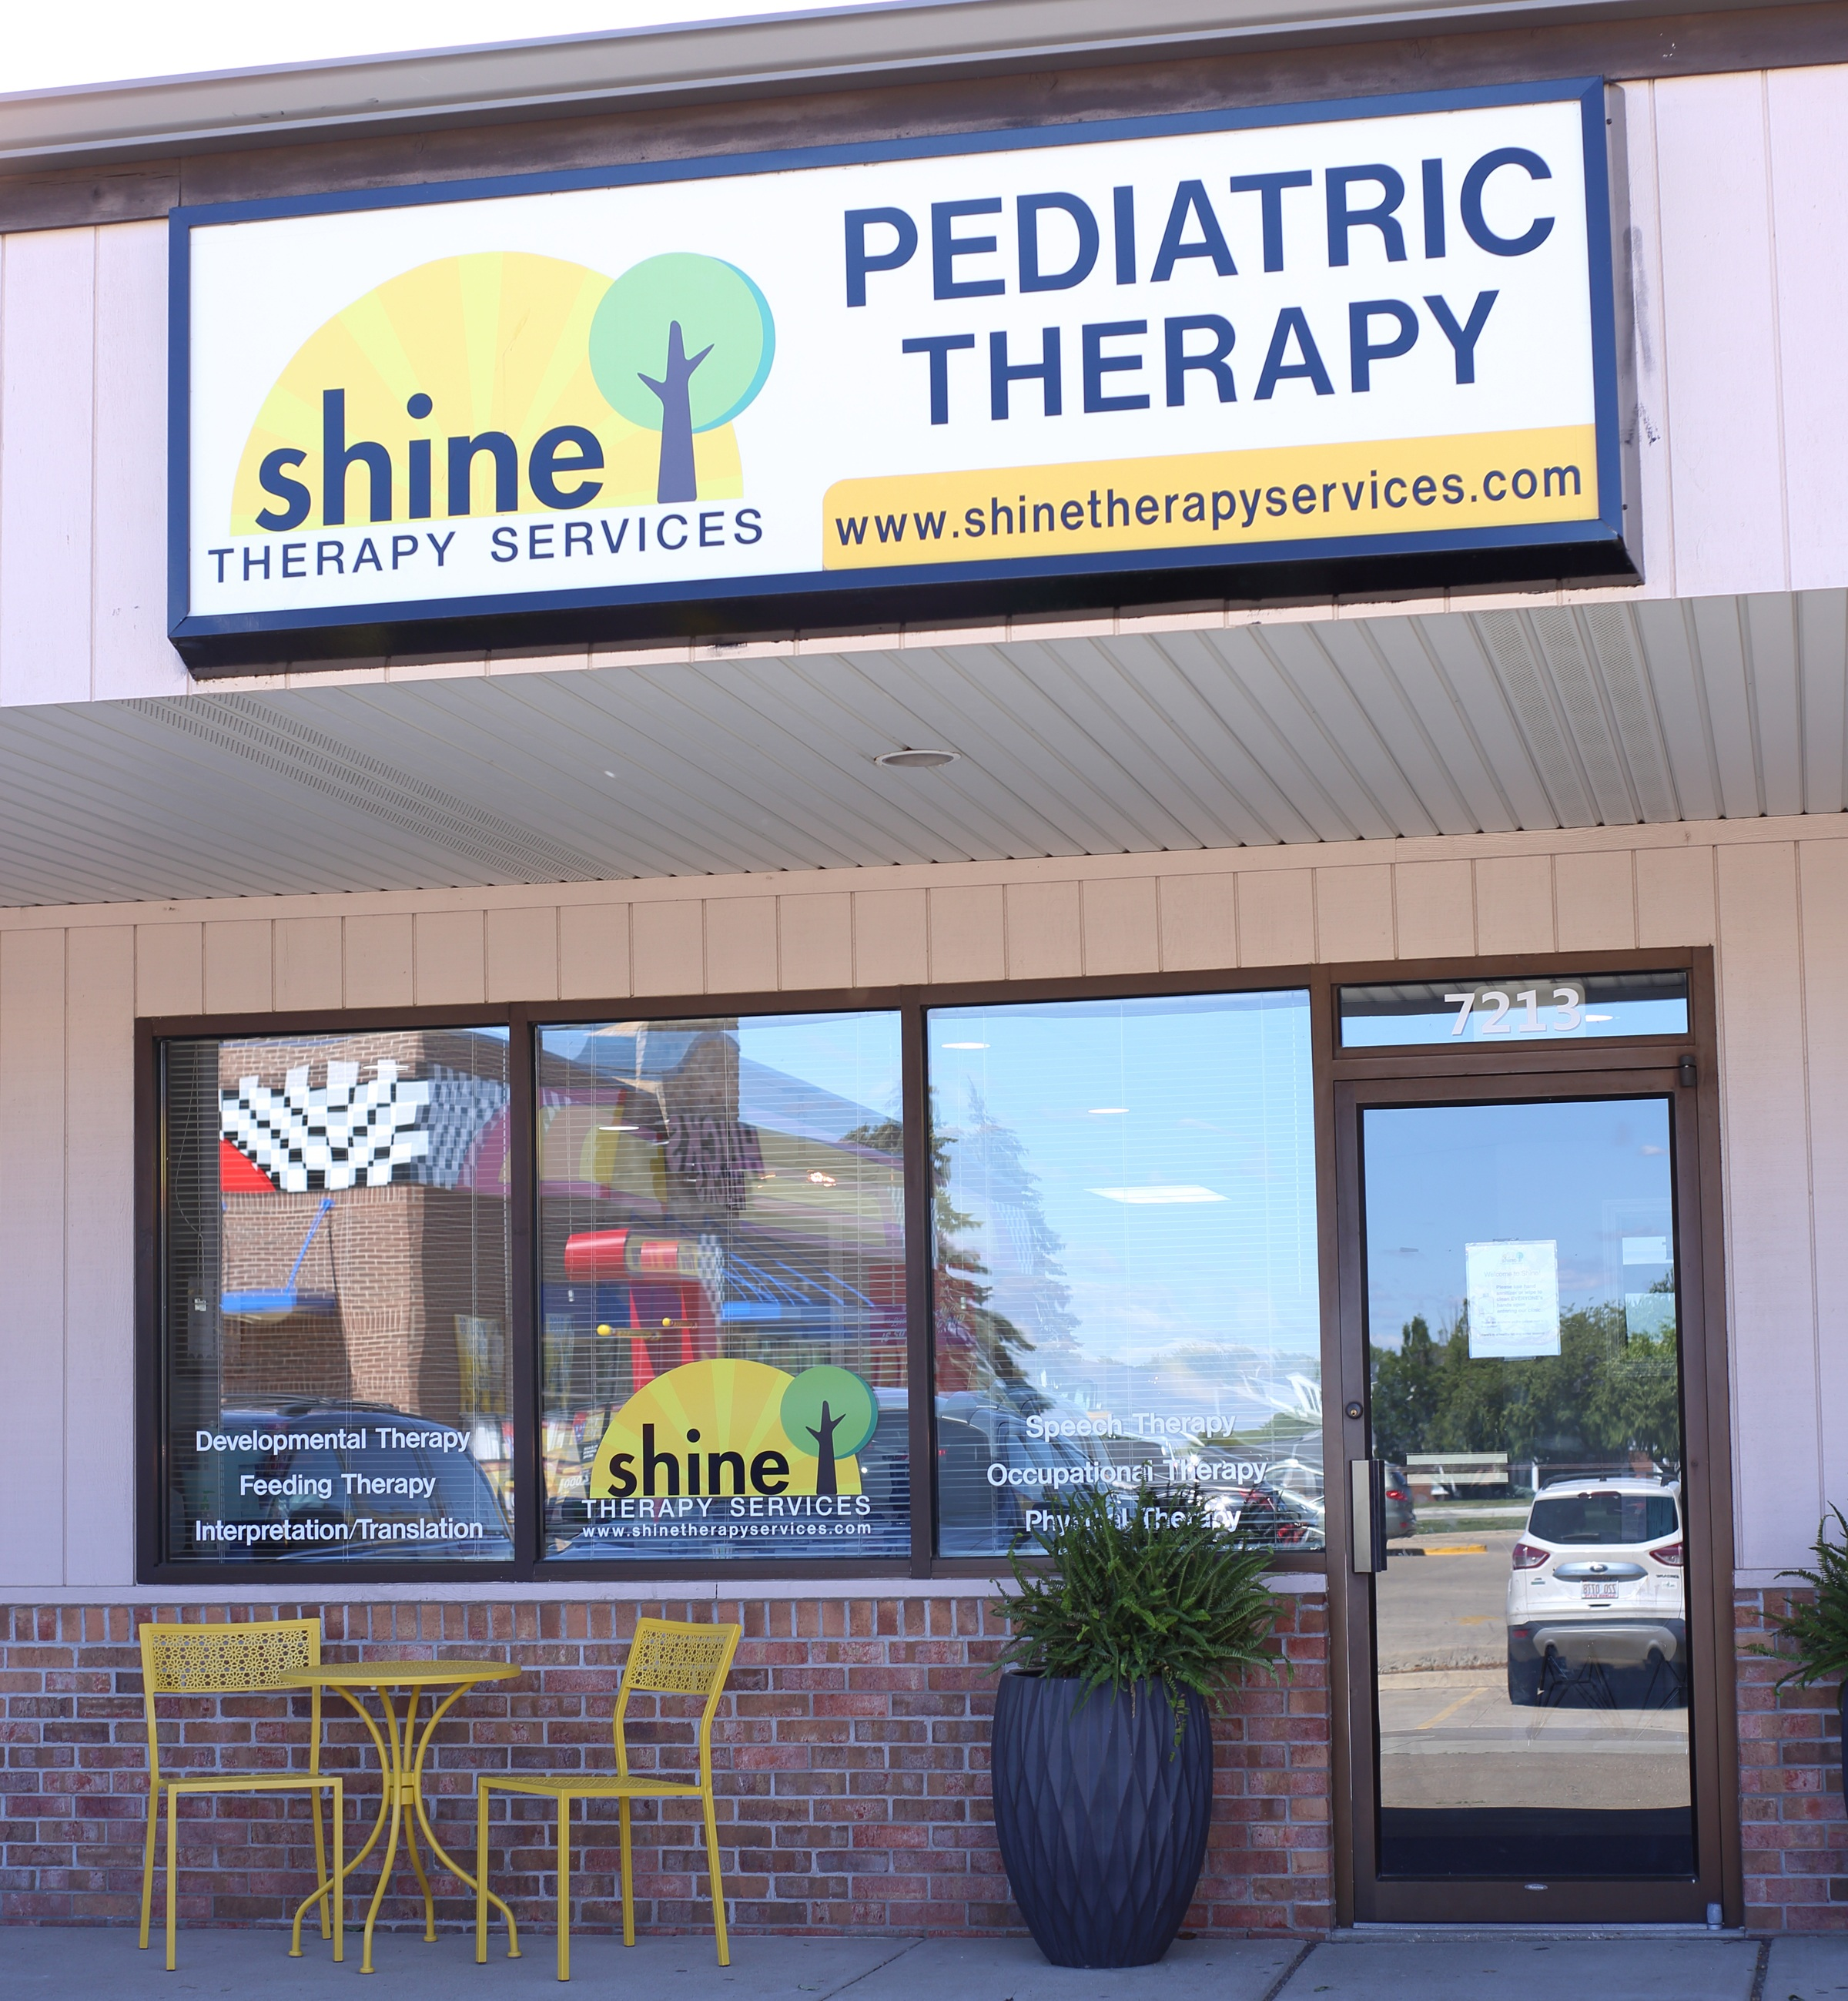 Our Location - We moved into our current clinic in July of 2018. It is located at: 7213 N Allen Road, Peoria IL 61614- right next door to Khaki Jacks!